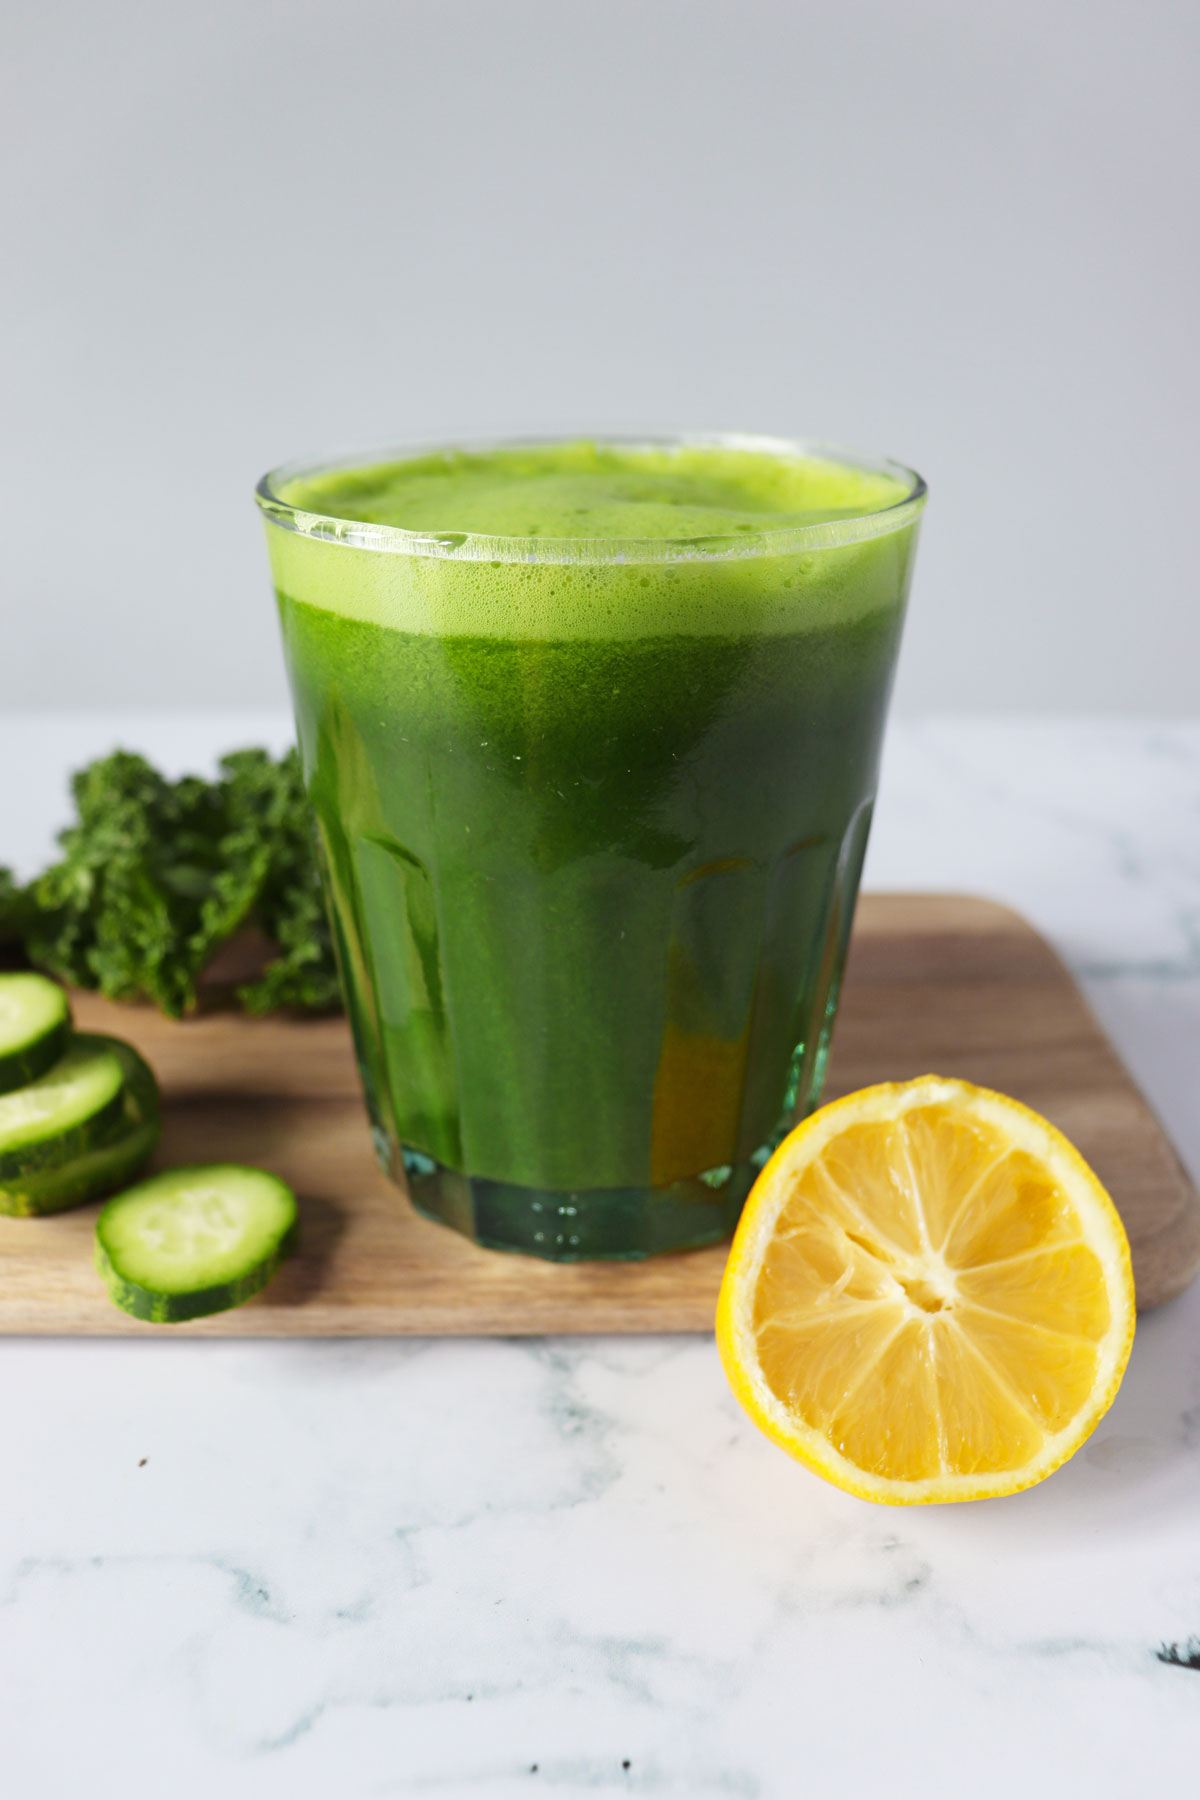 A glass of green juice with cucumber, lemon, and kale